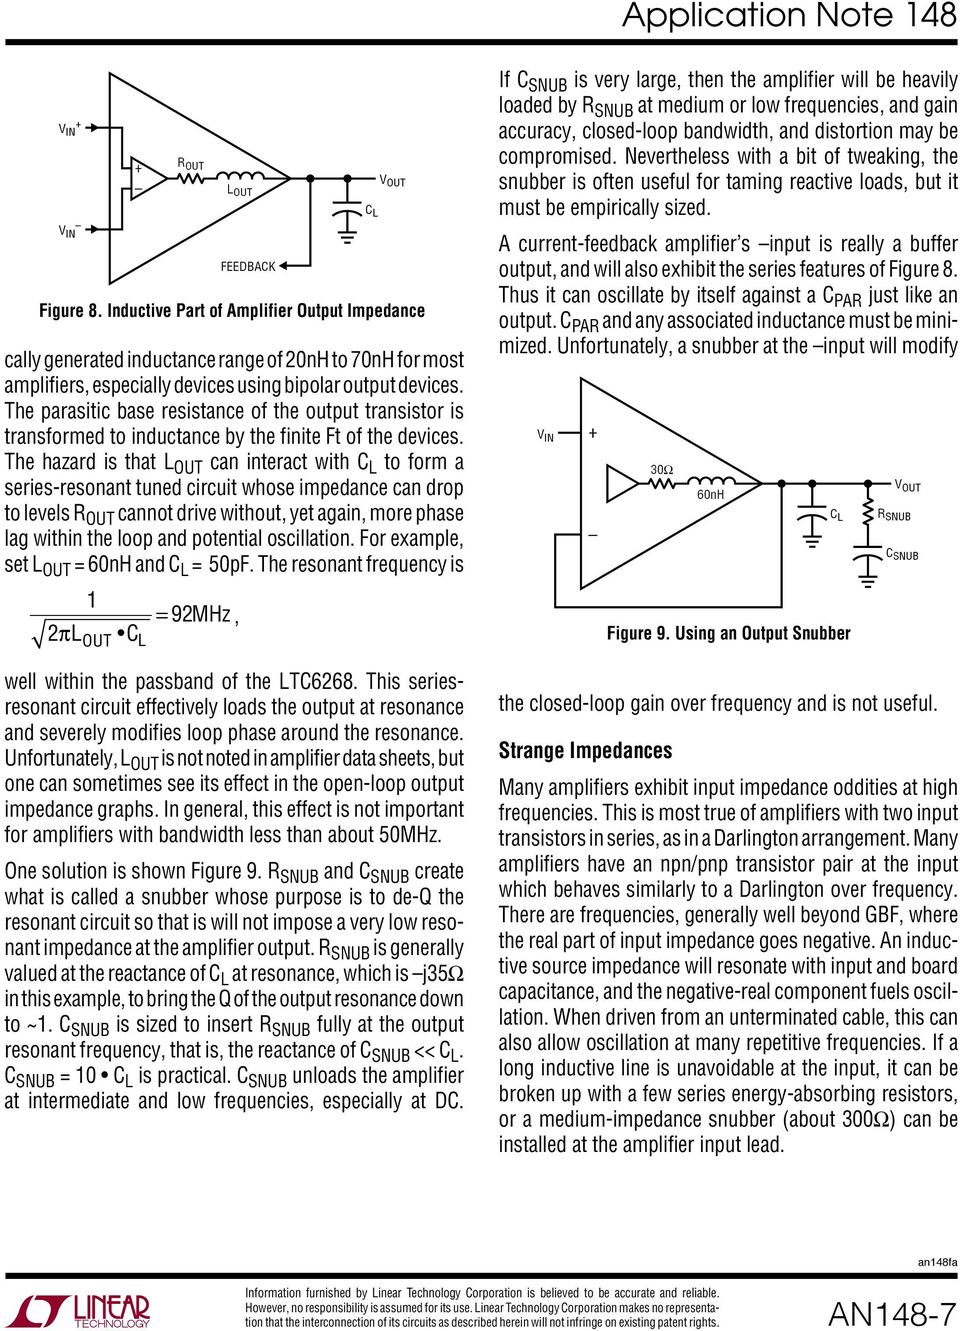 Application Note 148 September Does Your Op Amp Oscillate An Barry Operational Amplifier Opamp Oscillatorcircuit Diagram World The Hazard Is That L Out Can Interact With C To Form A Series Resonant